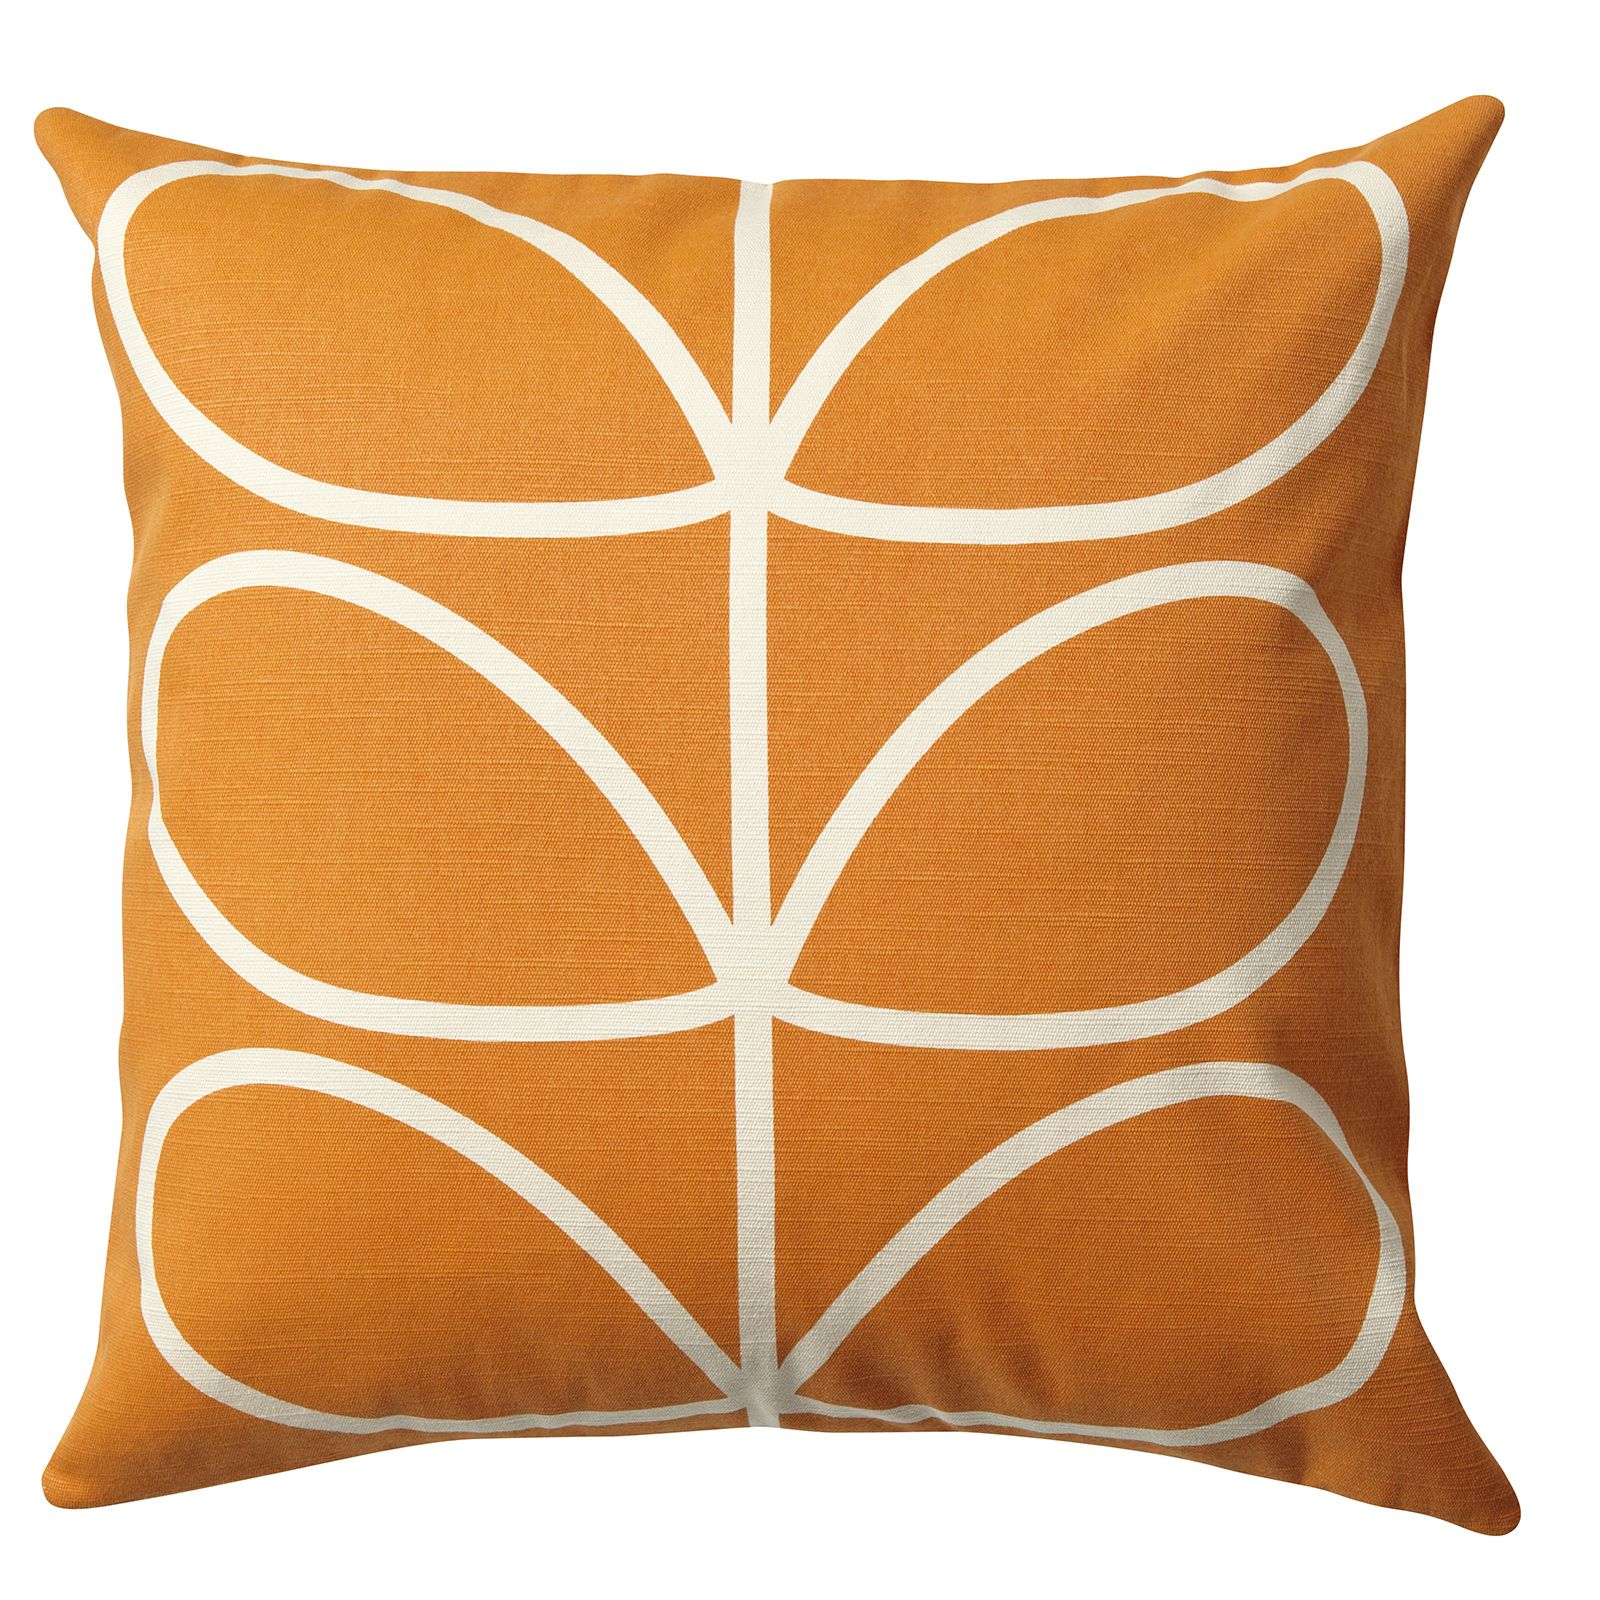 Orla kiely linear stem cushion with zip to close this classic